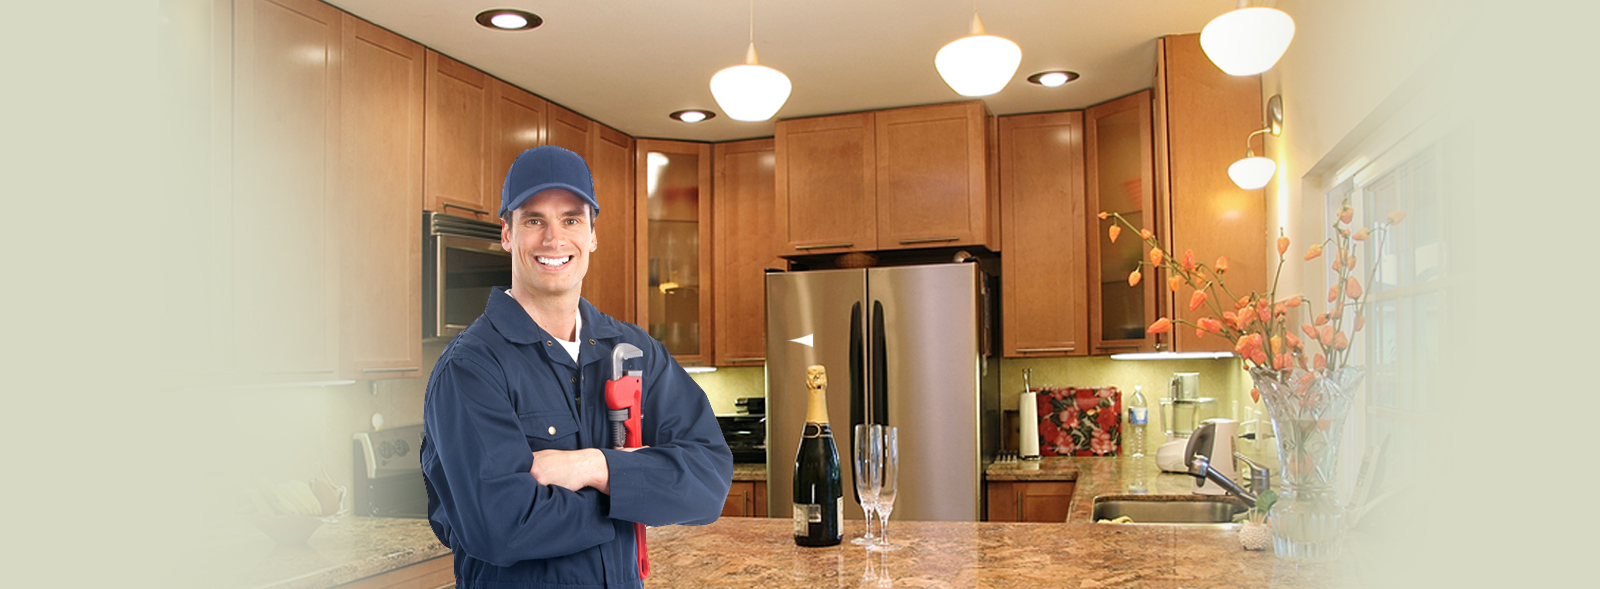 All Brands Appliance Boise - Appliances Sales, Repair & Service